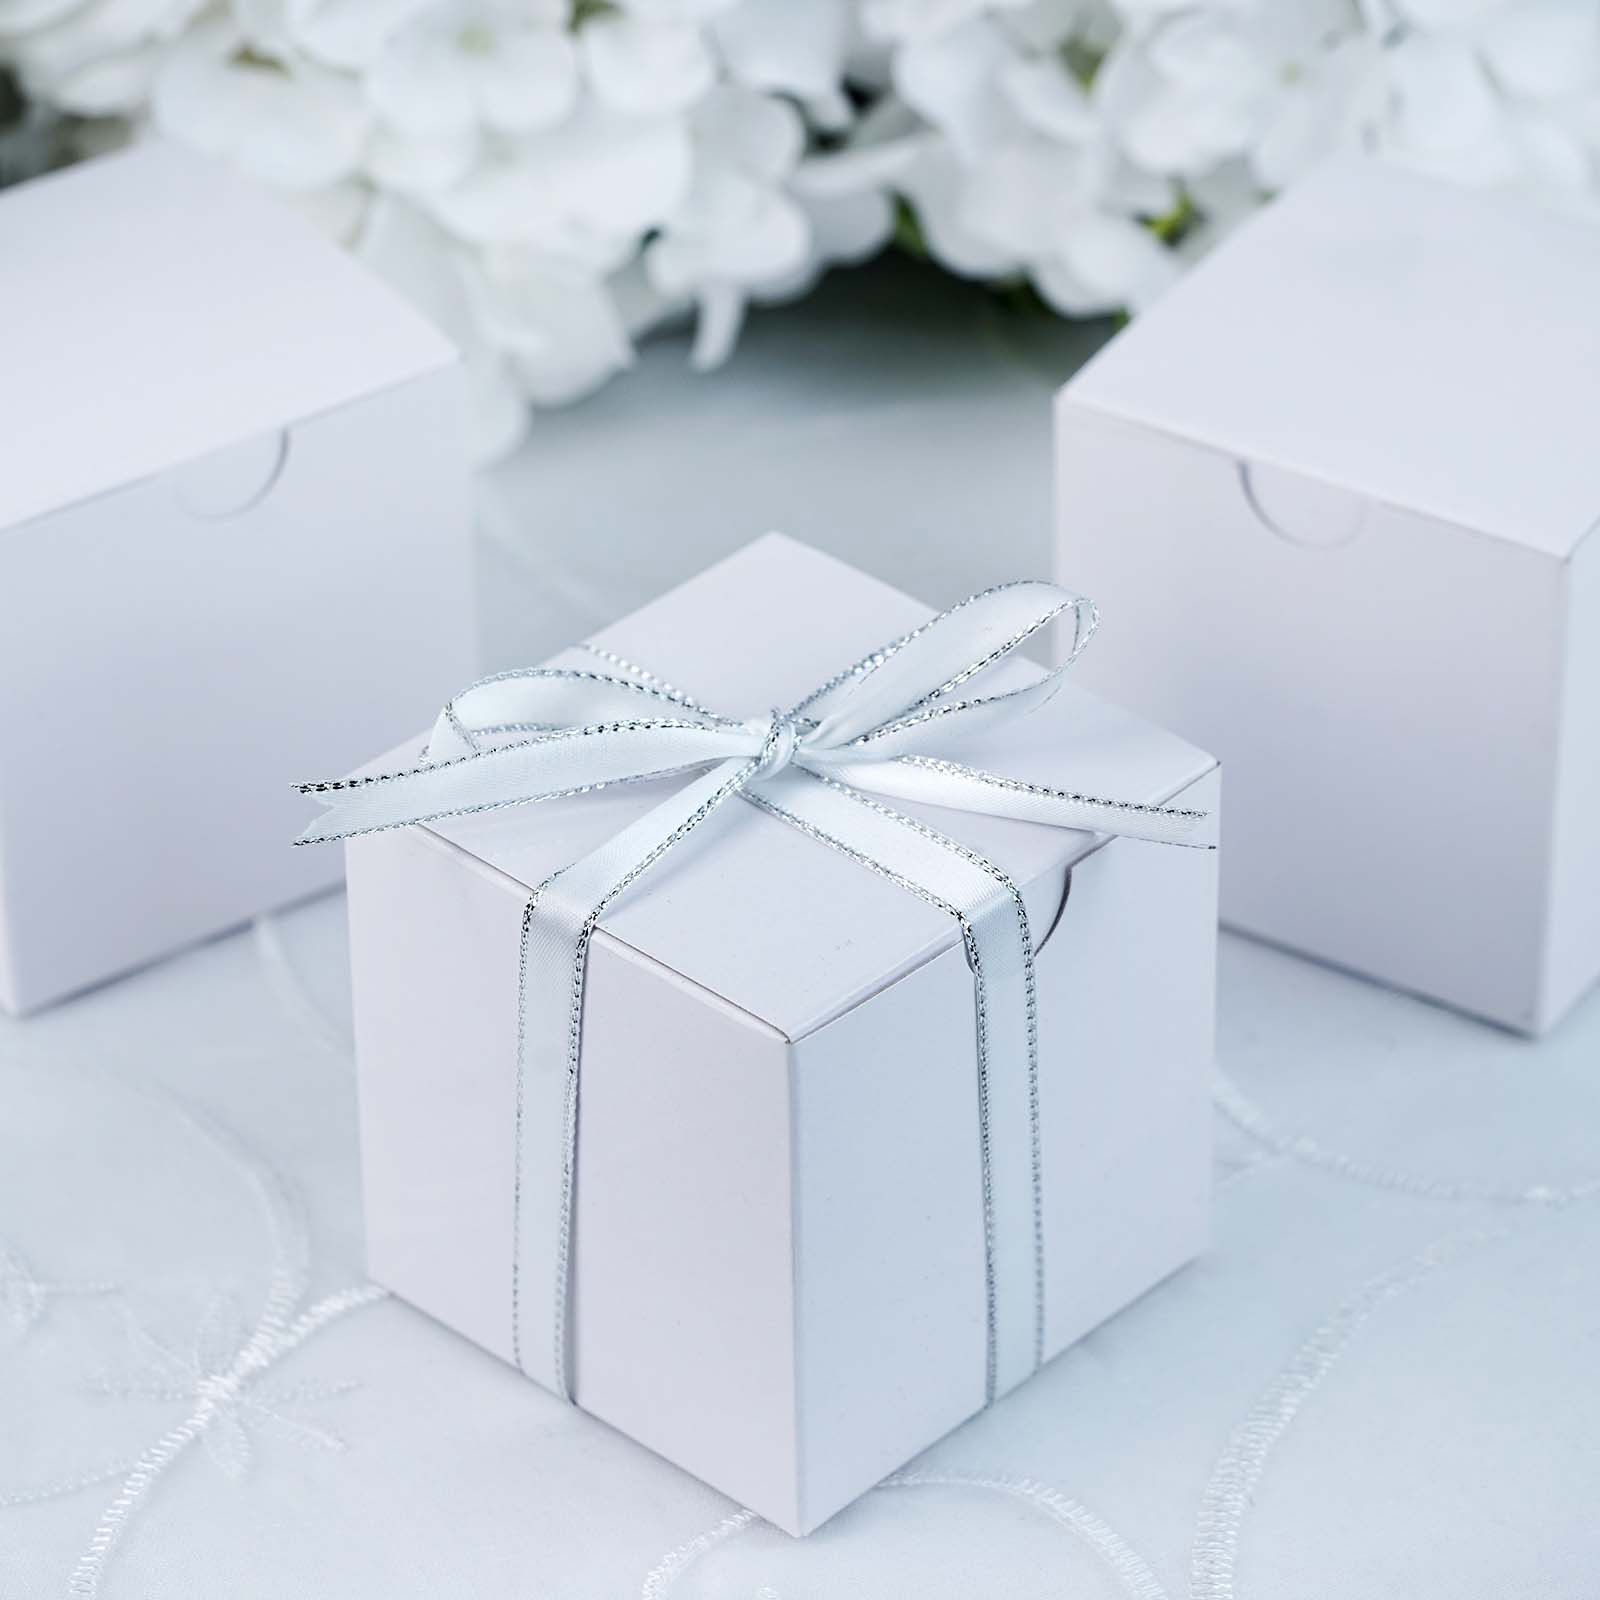 100 Pcs White Favor Boxes 3x3 Wedding Party Home Decorations Gift